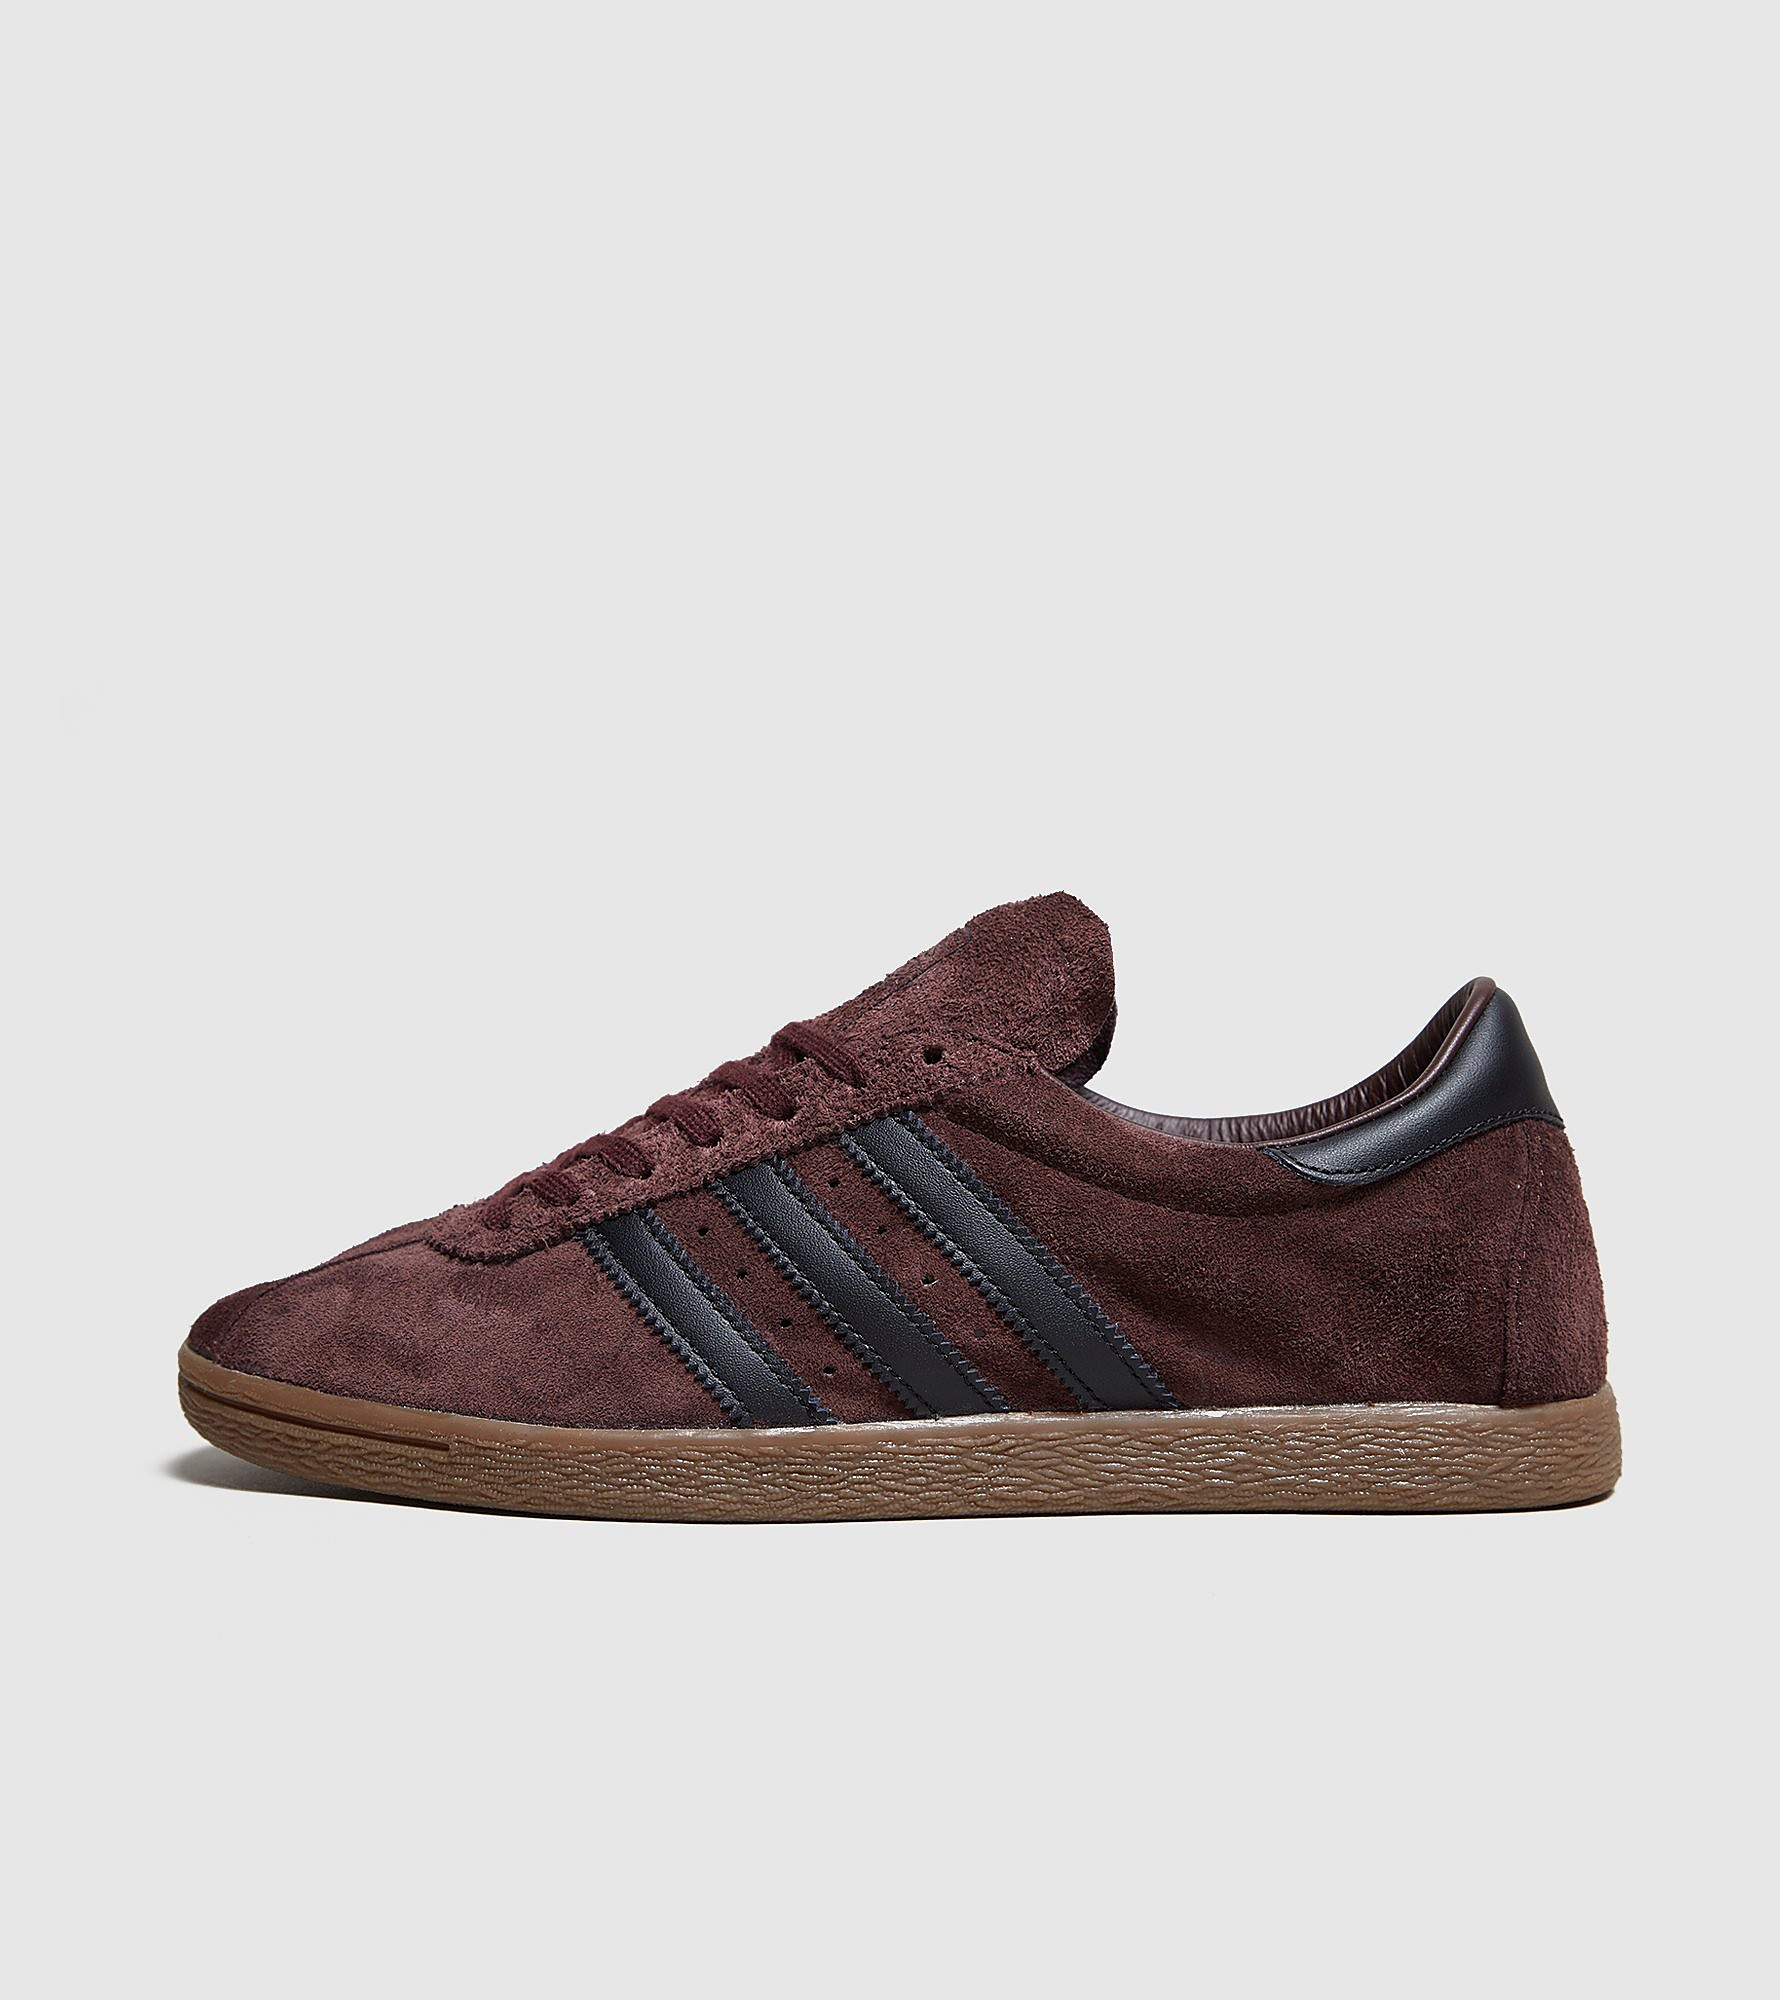 adidas Originals Tobacco